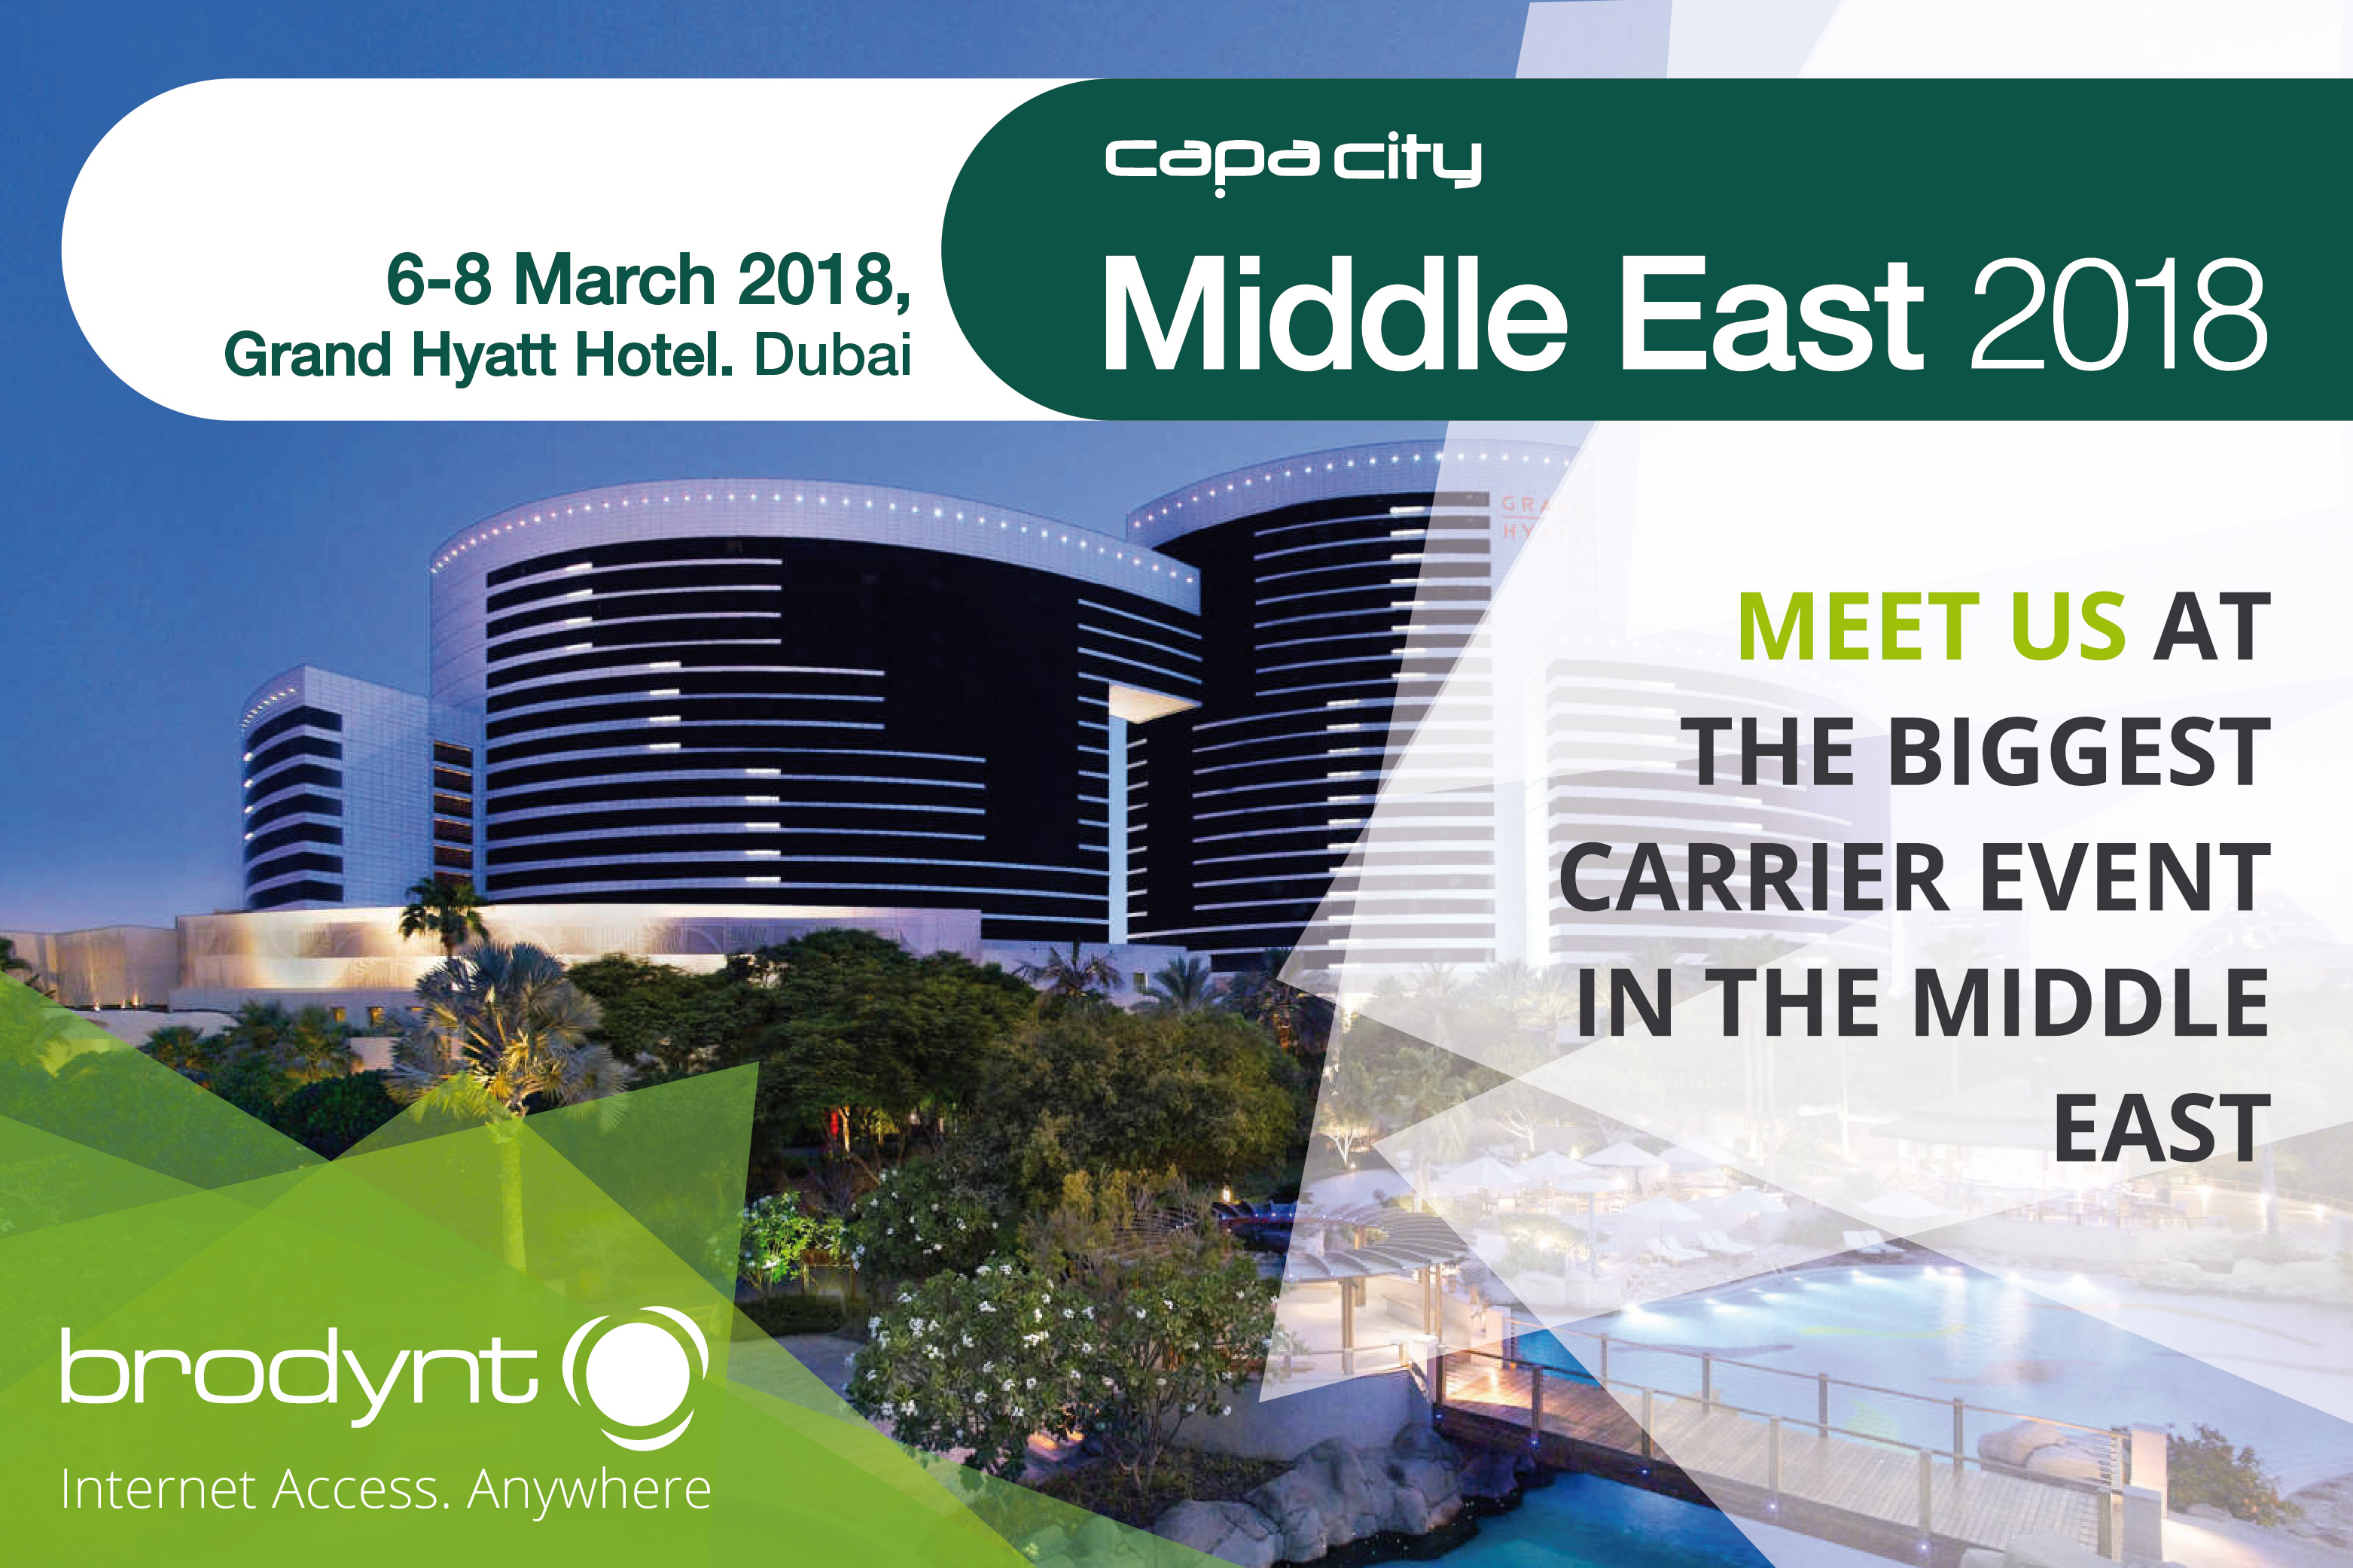 Capacity Middle East